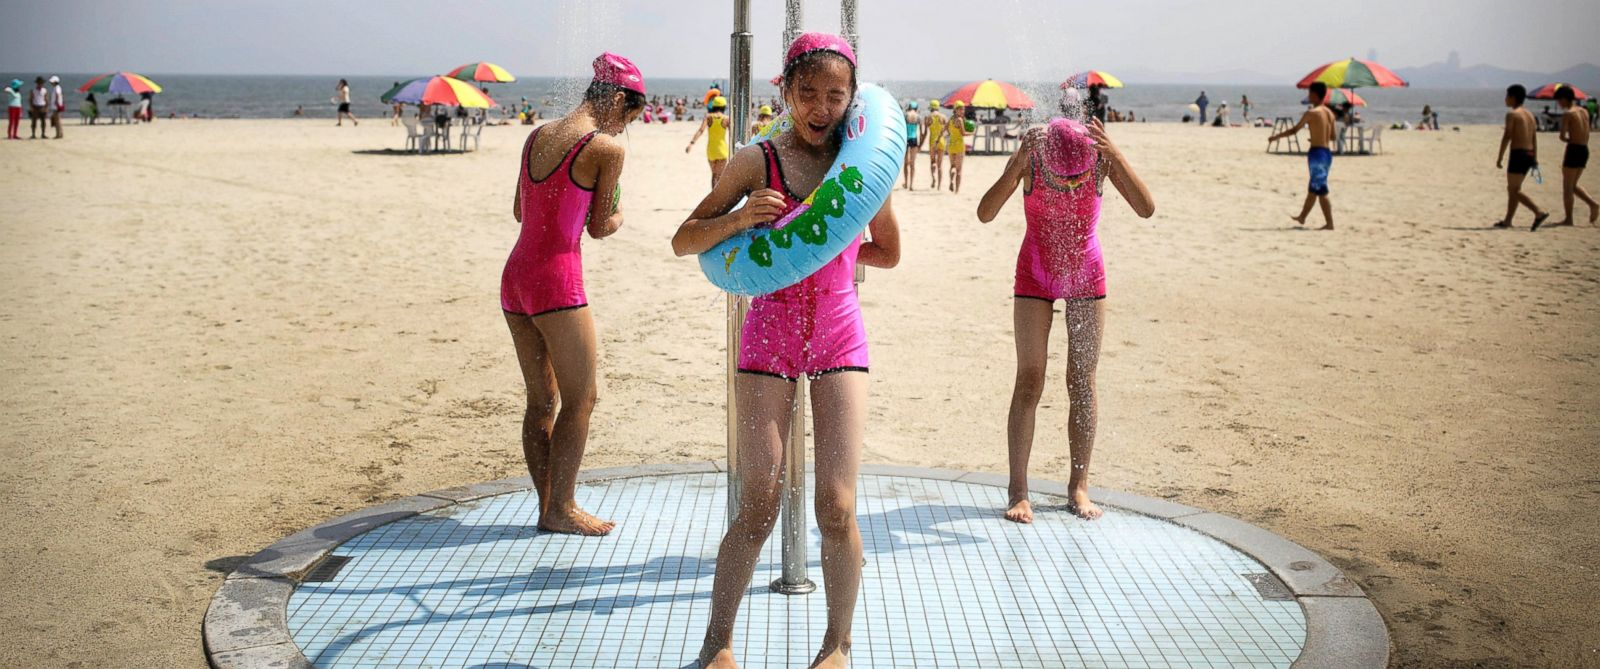 PHOTO: North Korean girls in similar bathing suits stand under a shower at the Songdowon International Childrens Camp, July 29, 2014, in Wonsan, North Korea.